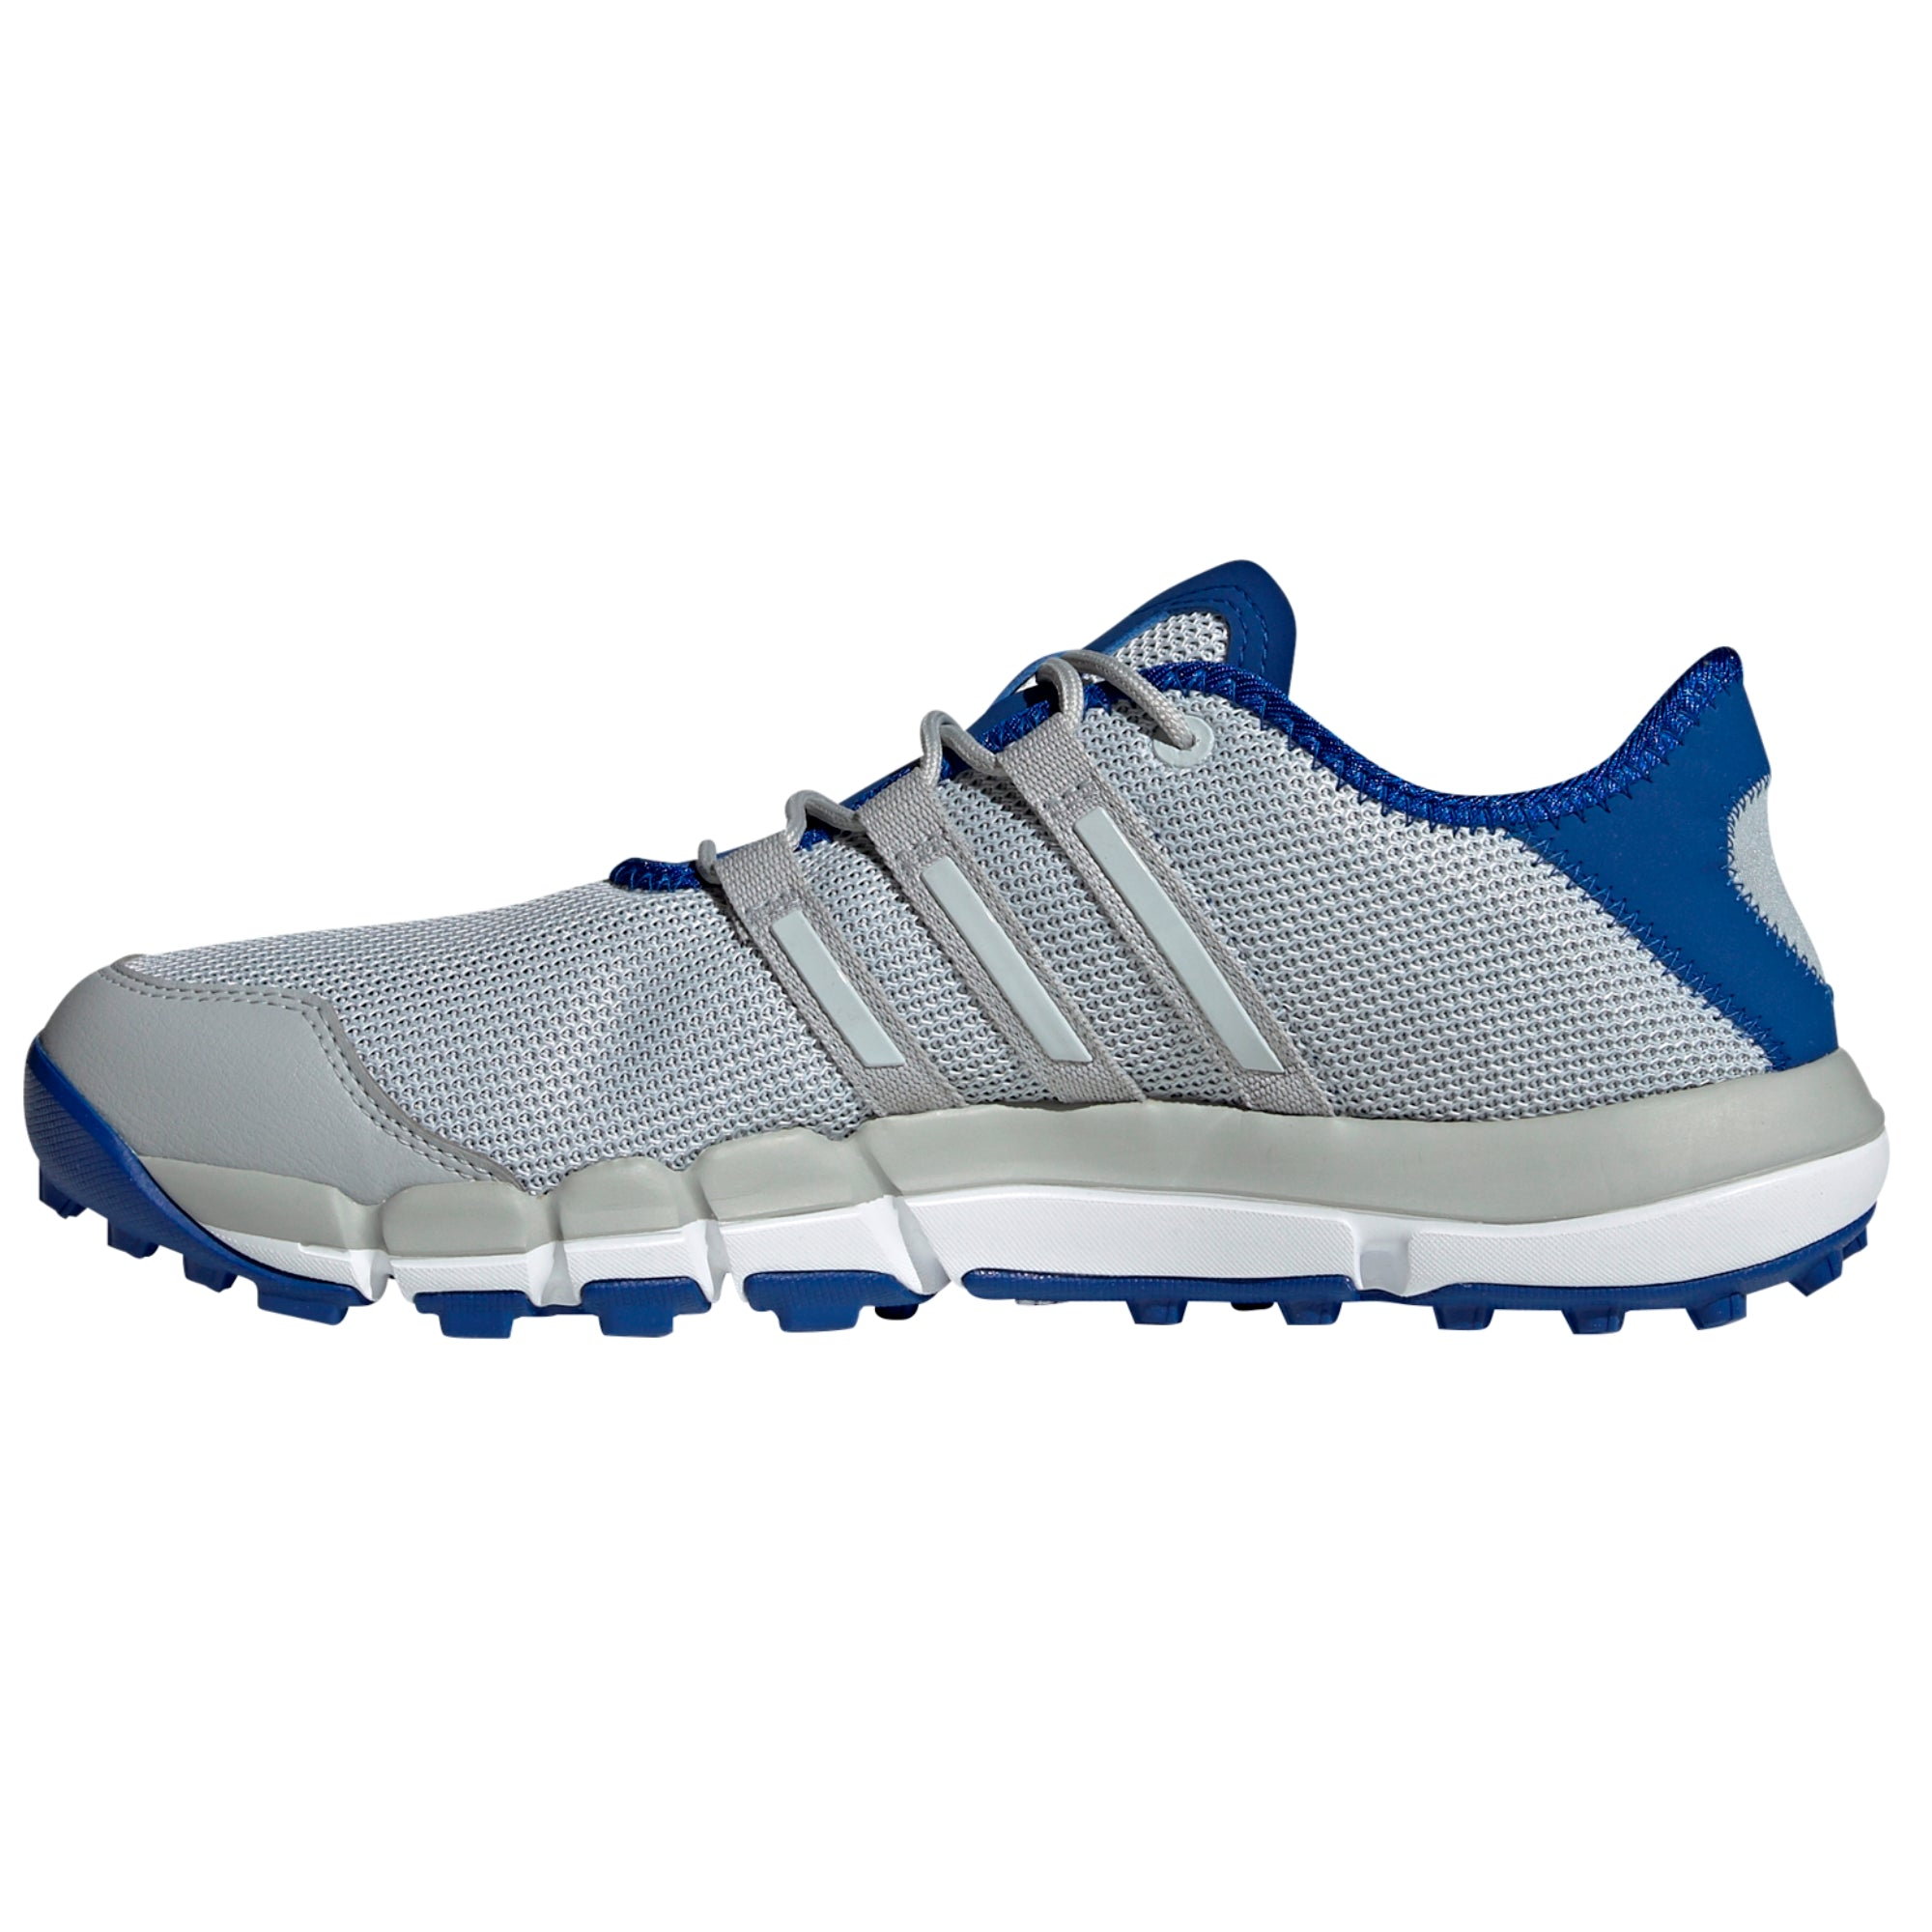 adidas ClimaCool ST Golf Shoes F33525